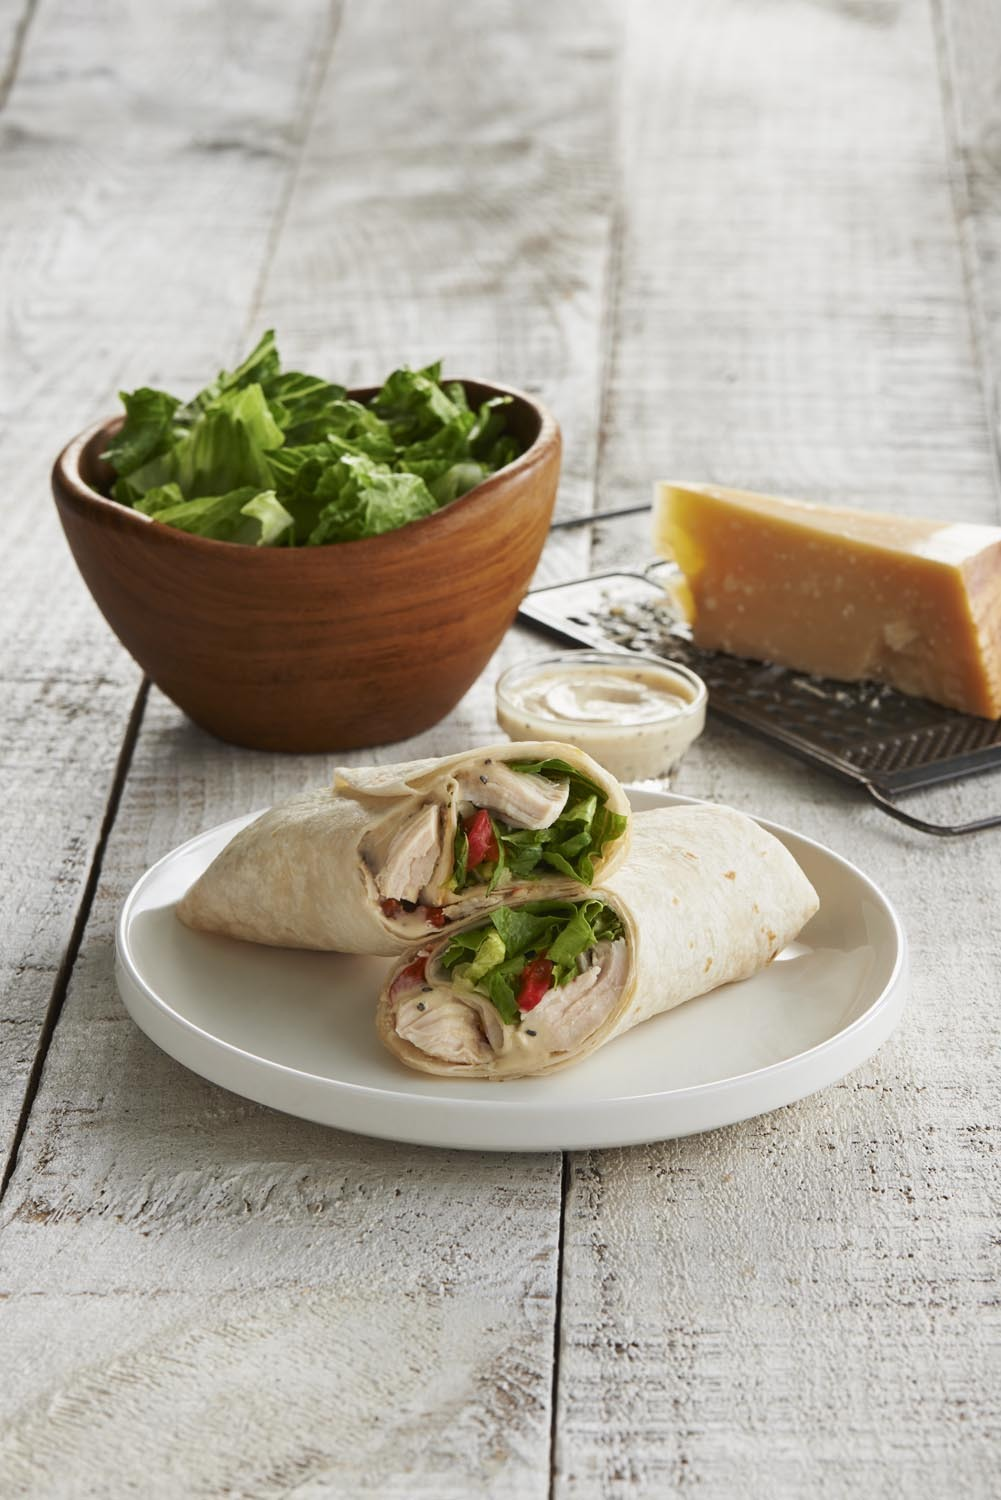 Caribou Coffee introduces healthier-for-you snacks and meal options, including this Chicken Caesar Wrap. (Photo: Business Wire)